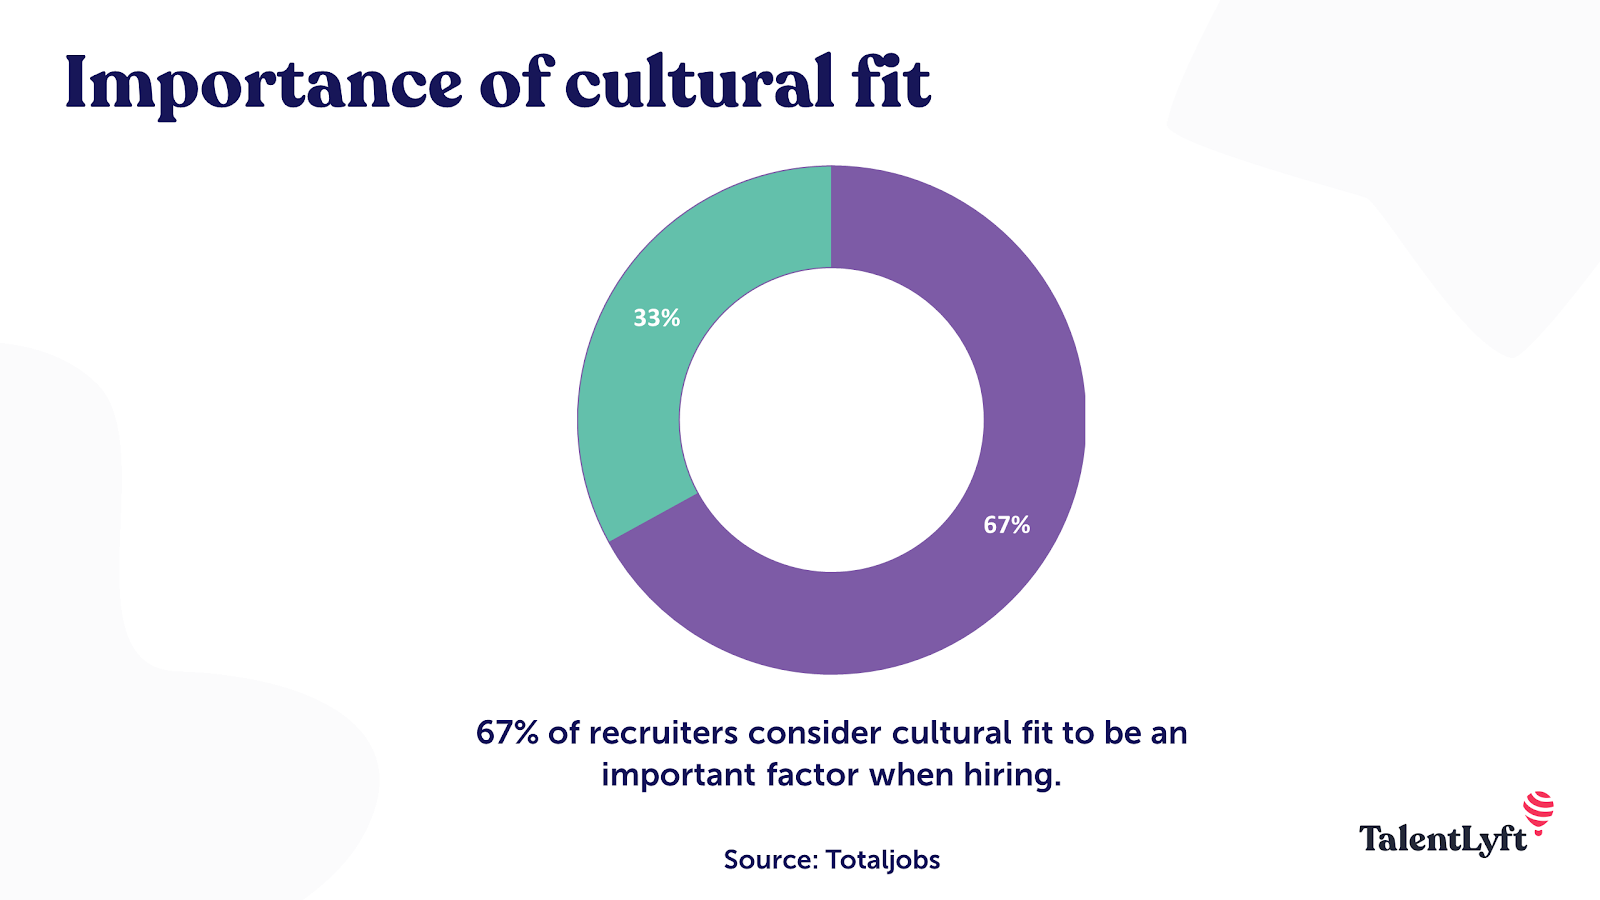 HR content strategy helps find and retain cultural fit